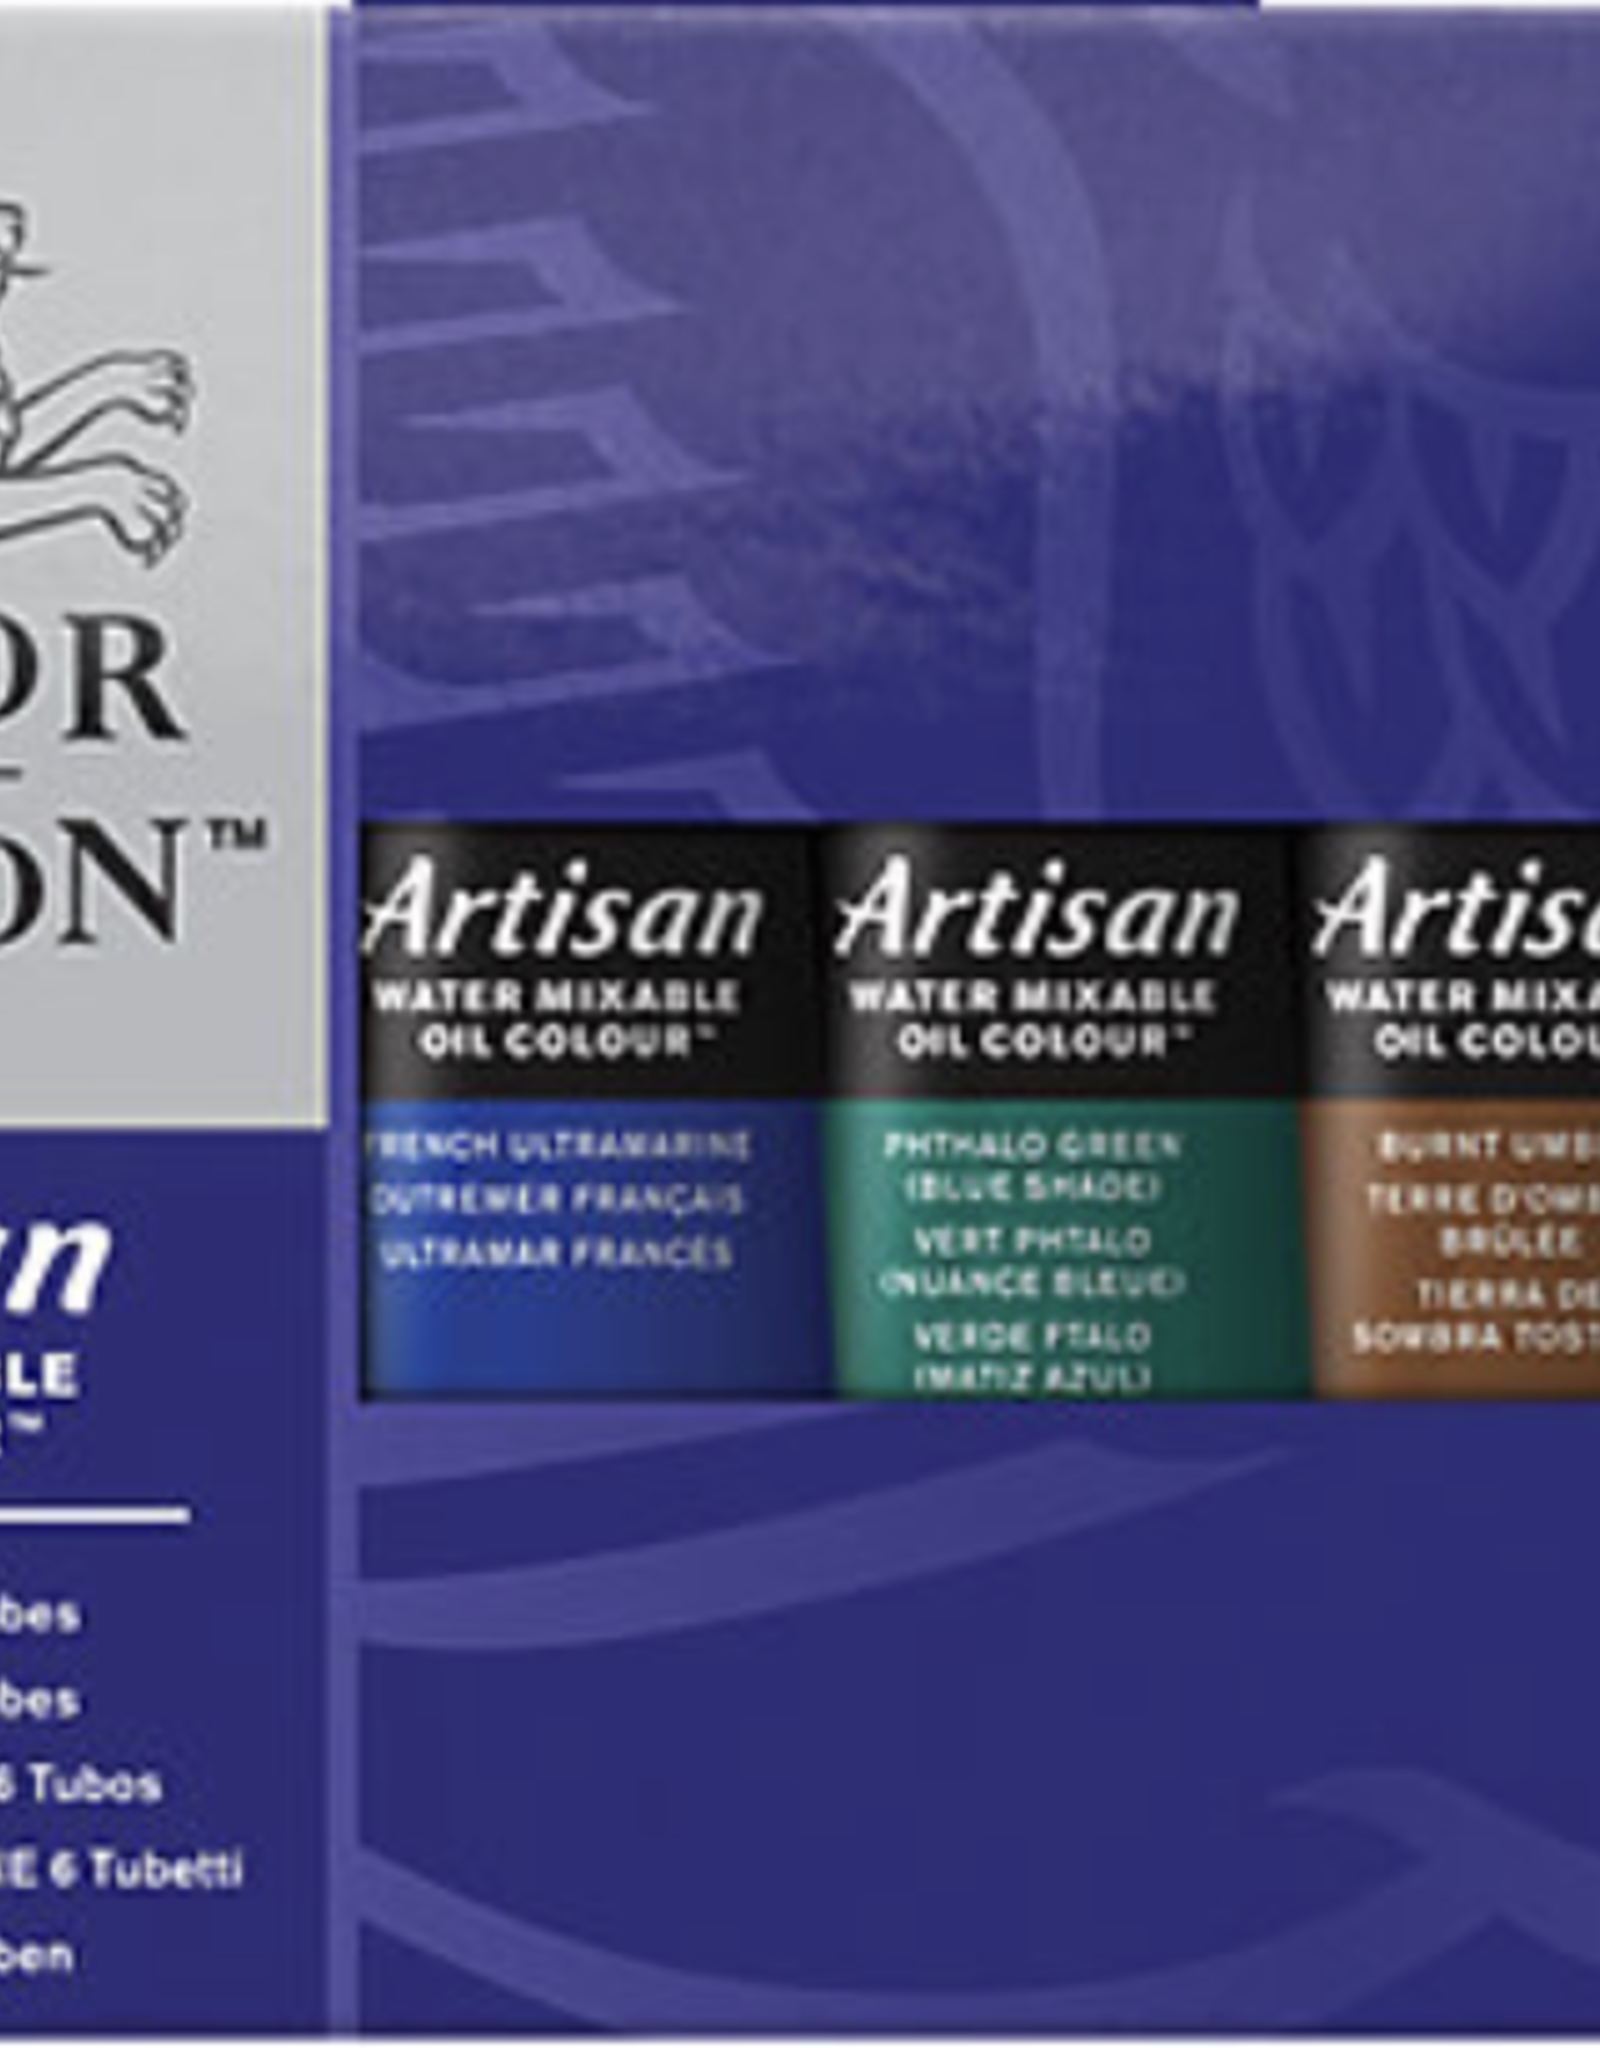 Winsor & Newton Artisan Water Mixable Oil Color Beginners Set